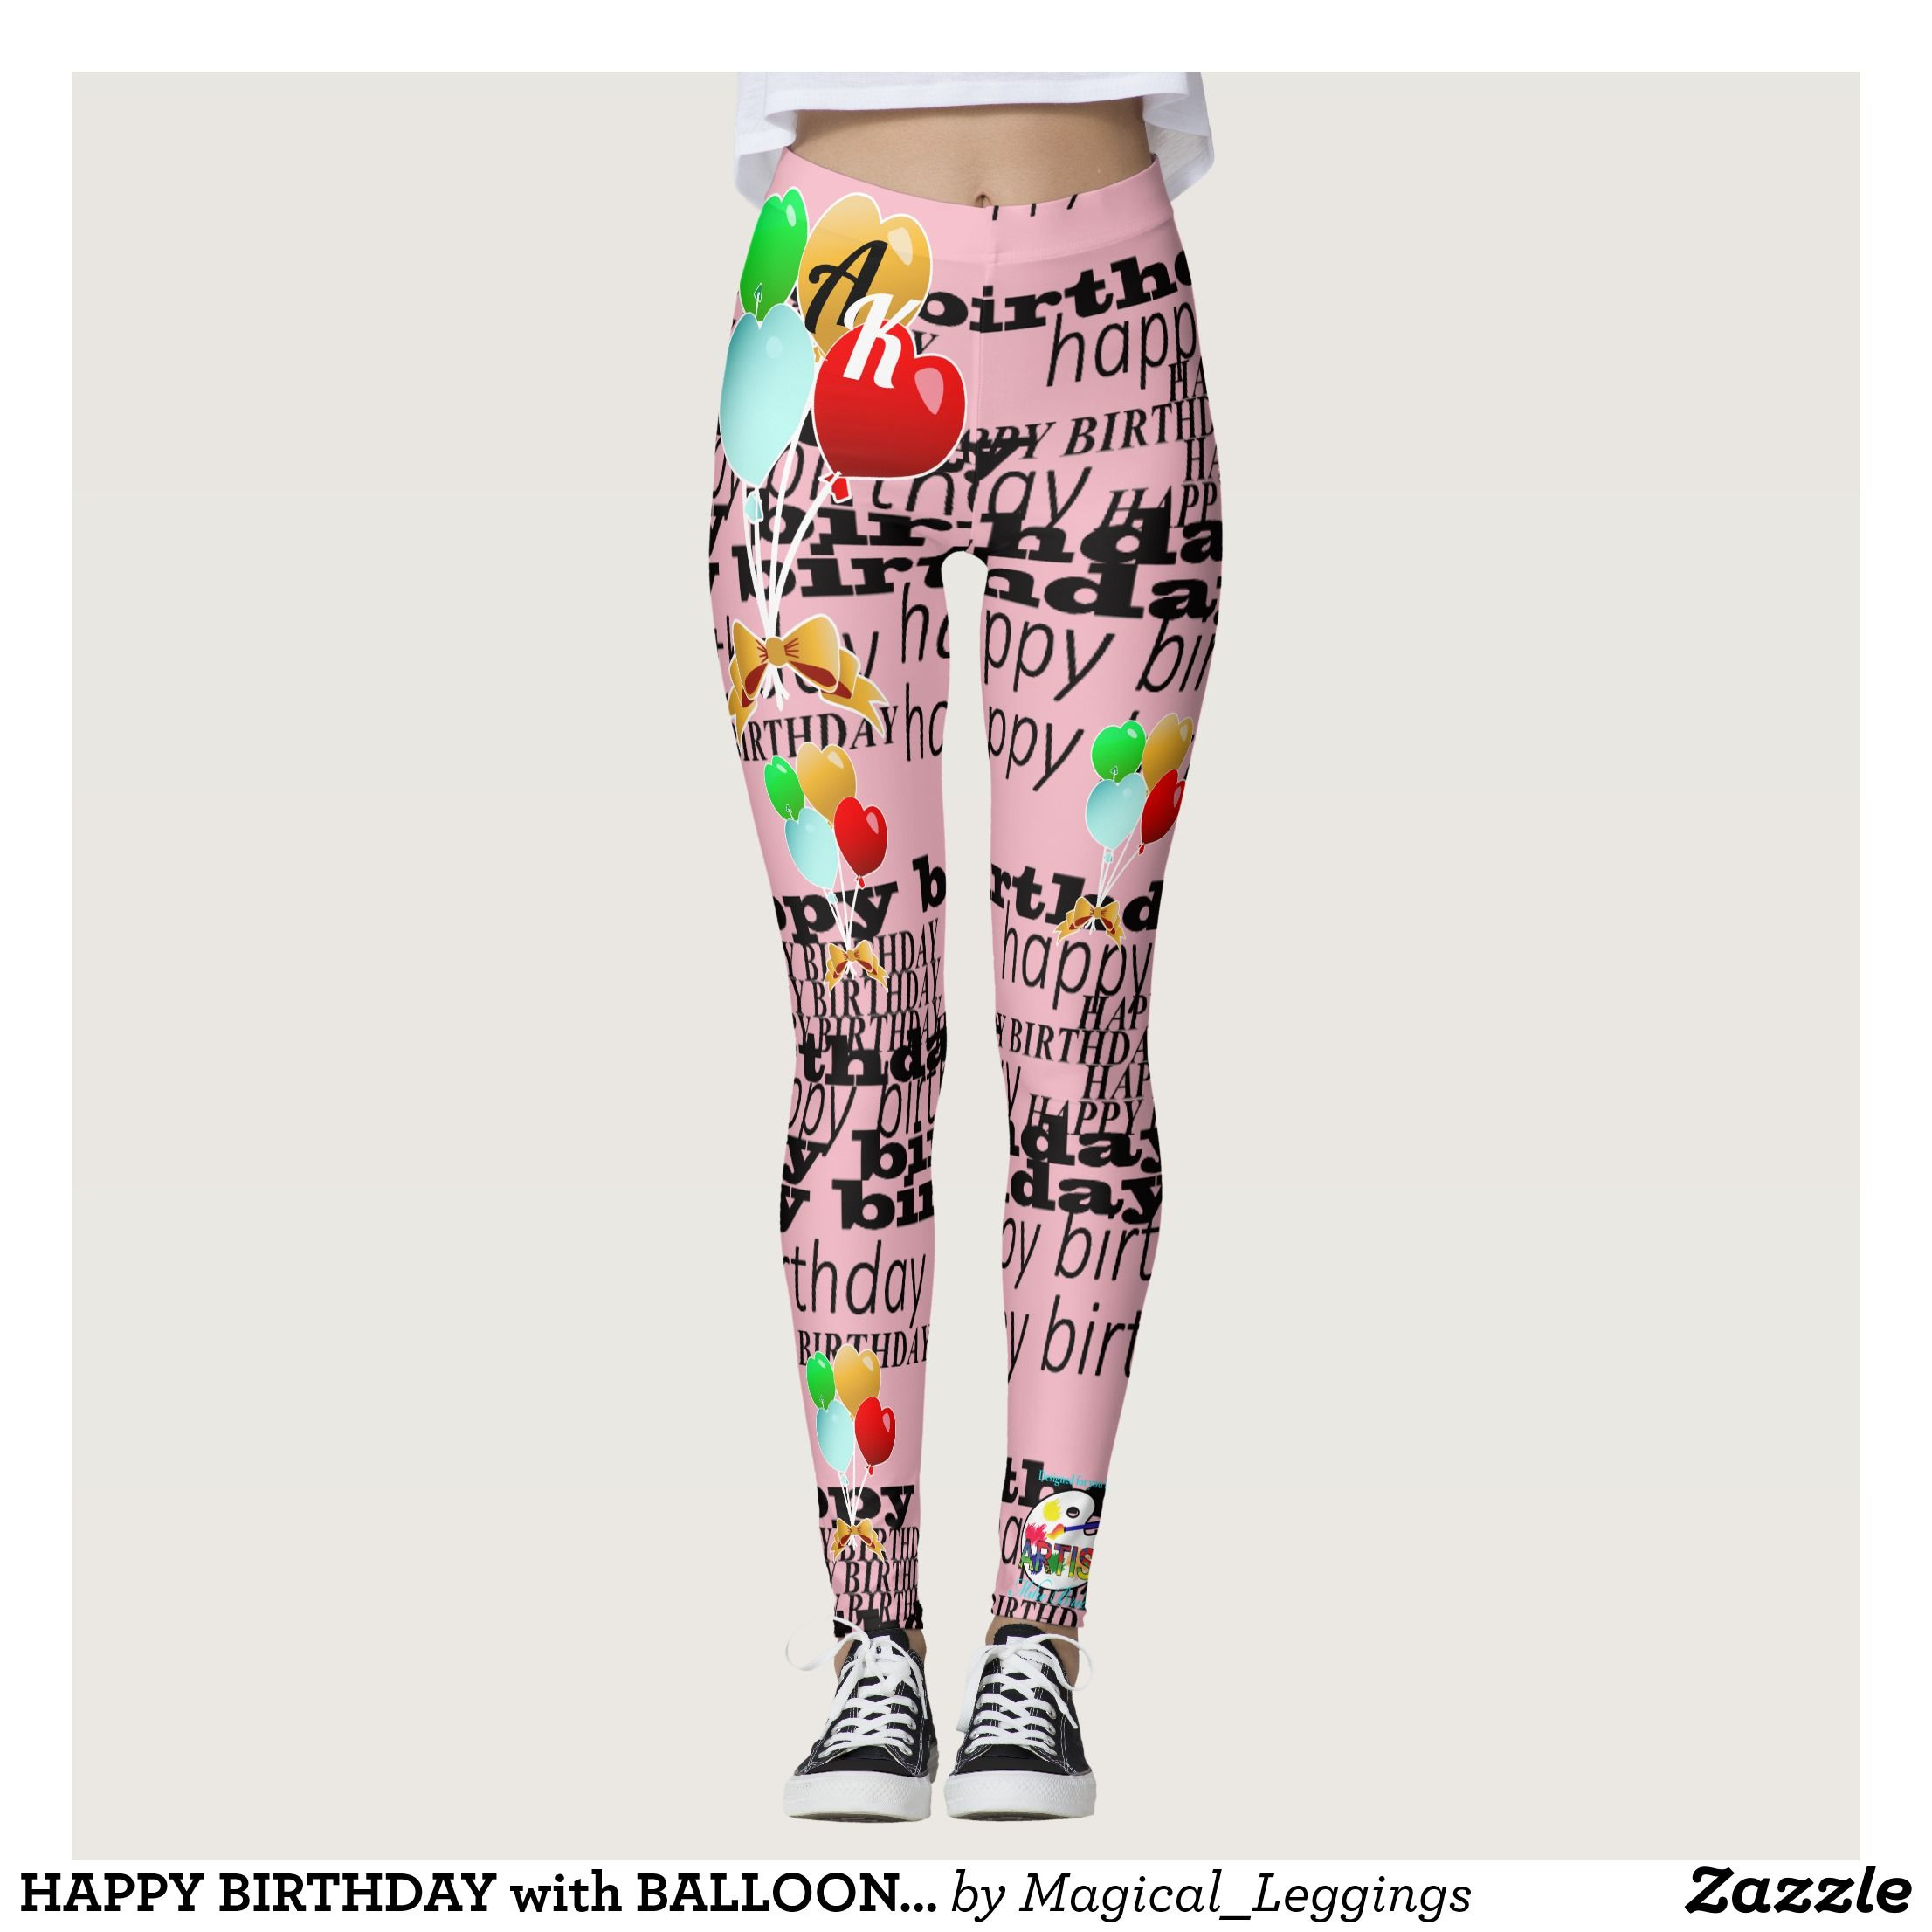 6ab42a8df1 HAPPY BIRTHDAY with BALLOONS Leggings : Beautiful #Yoga Pants - #Exercise Leggings  and #